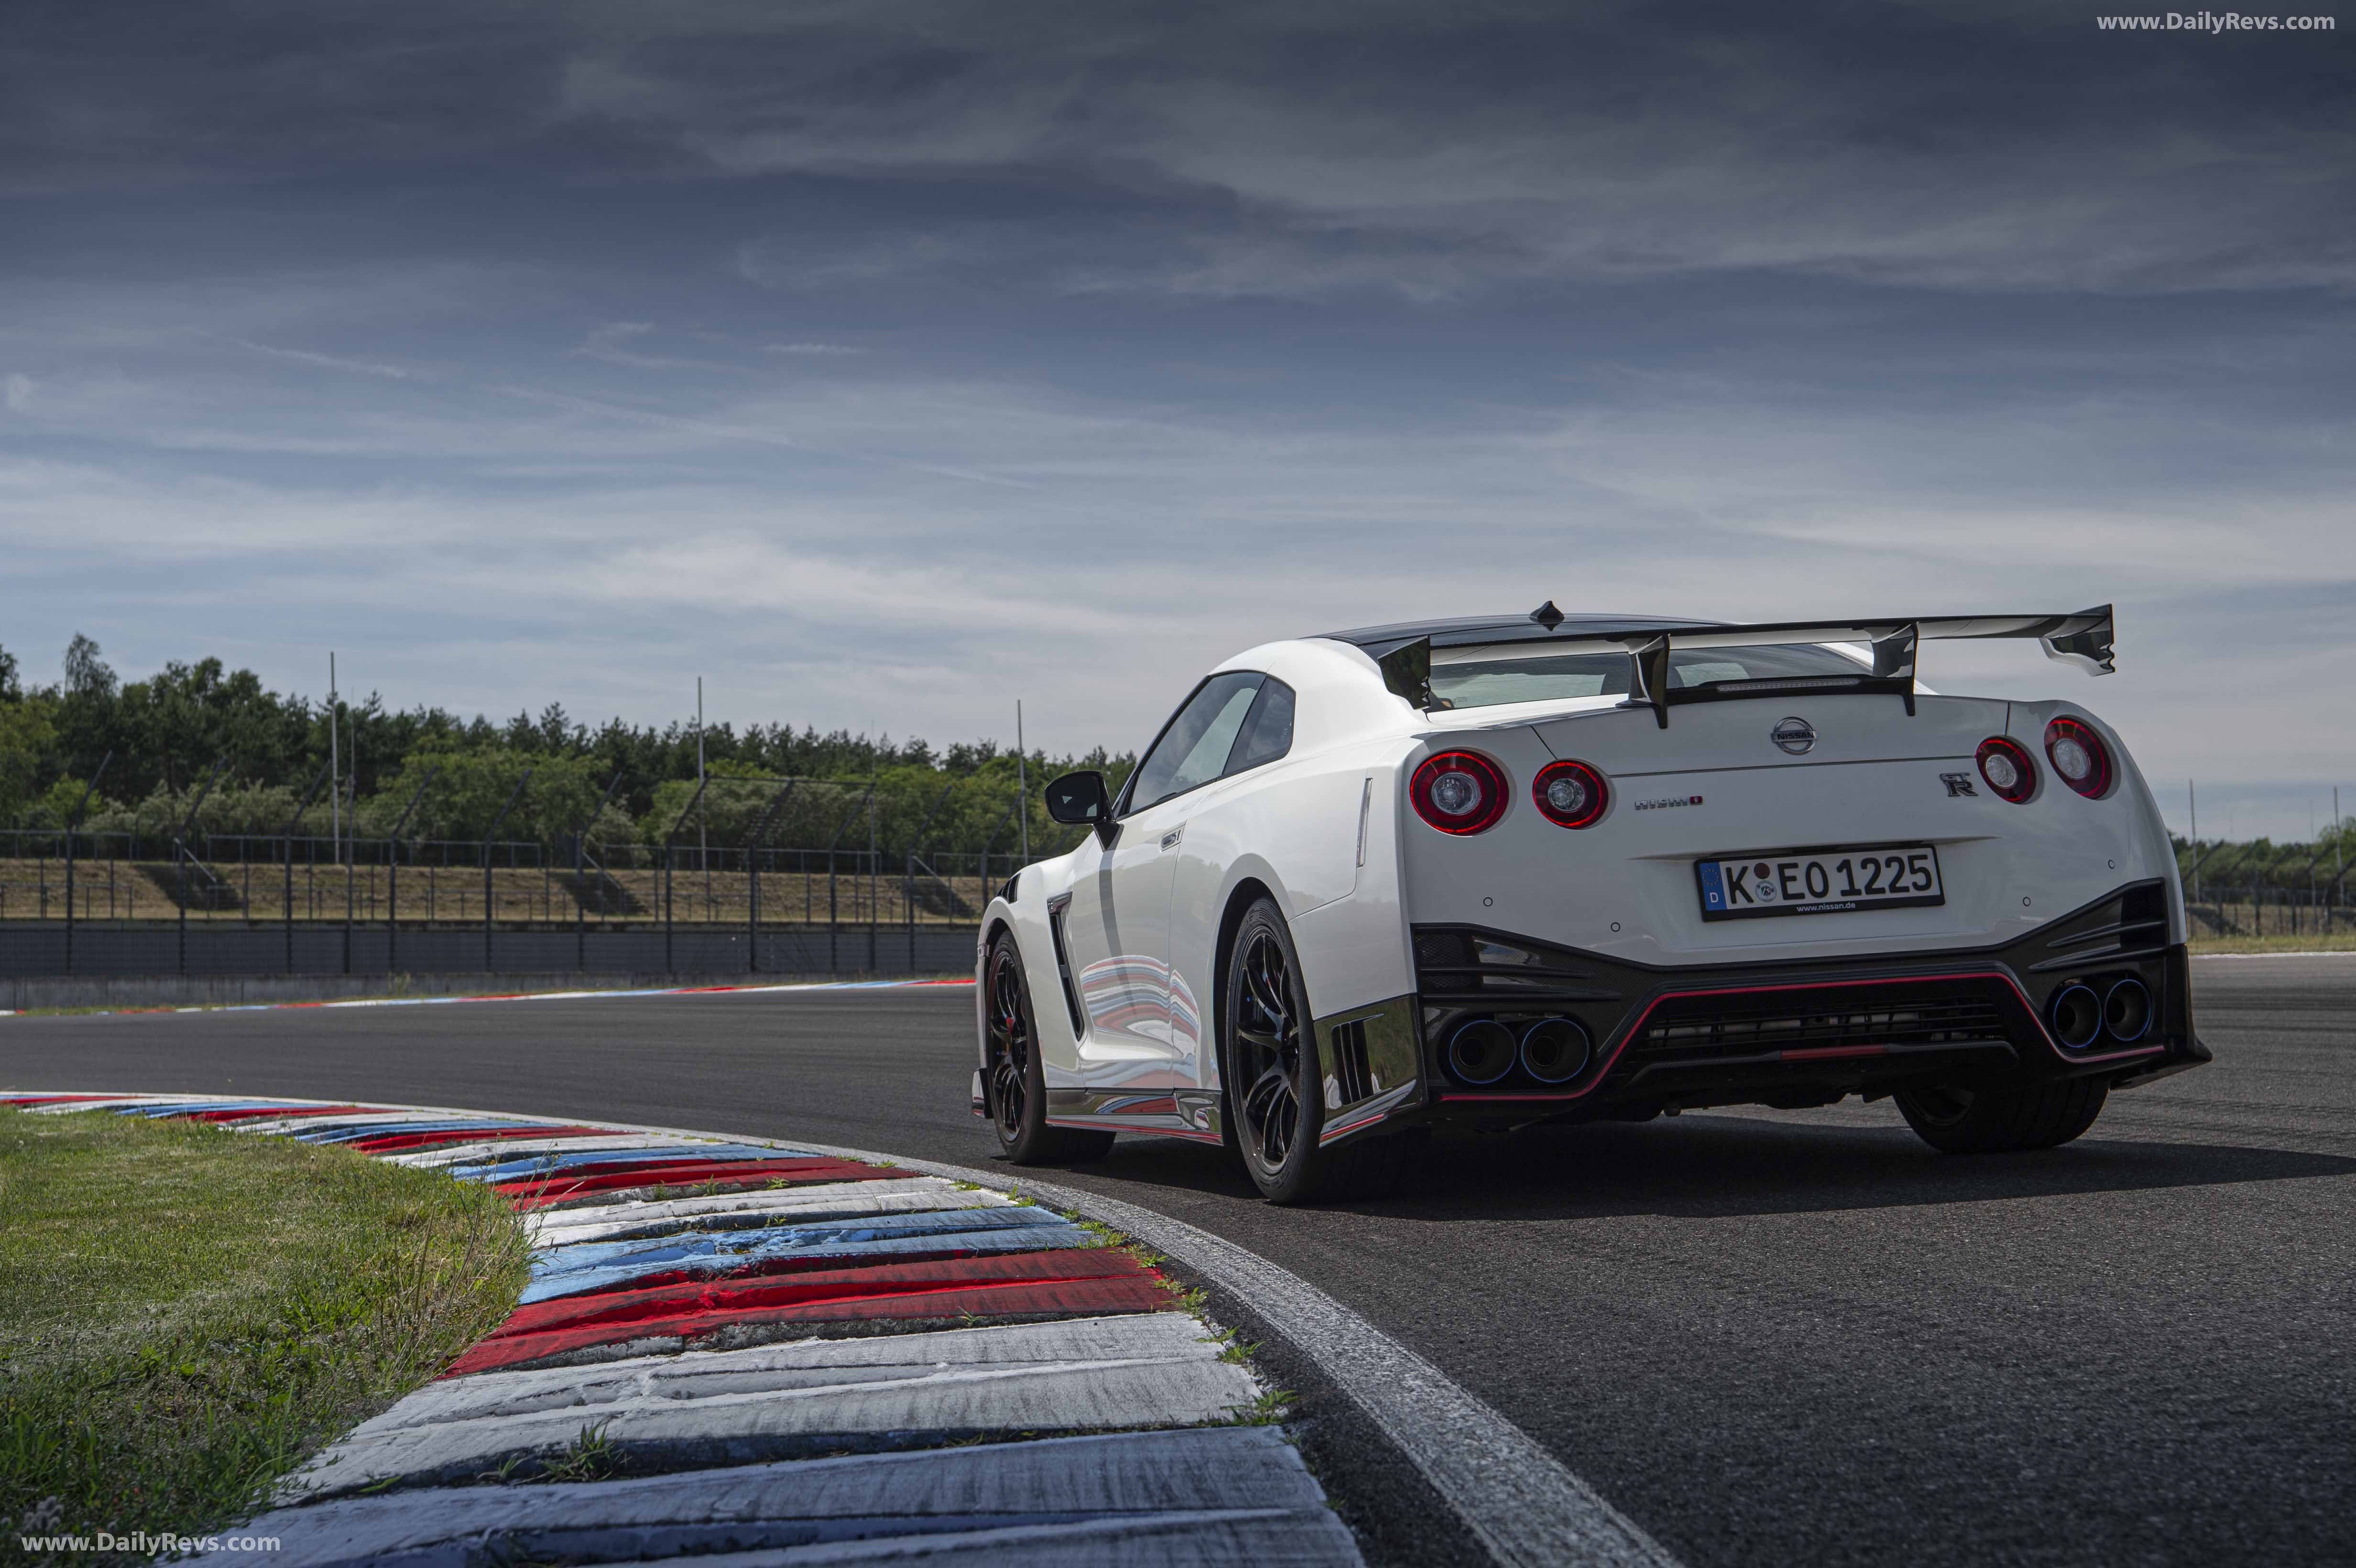 2020 Nissan GT-R Nismo - HD Pictures, Videos, Specs ...